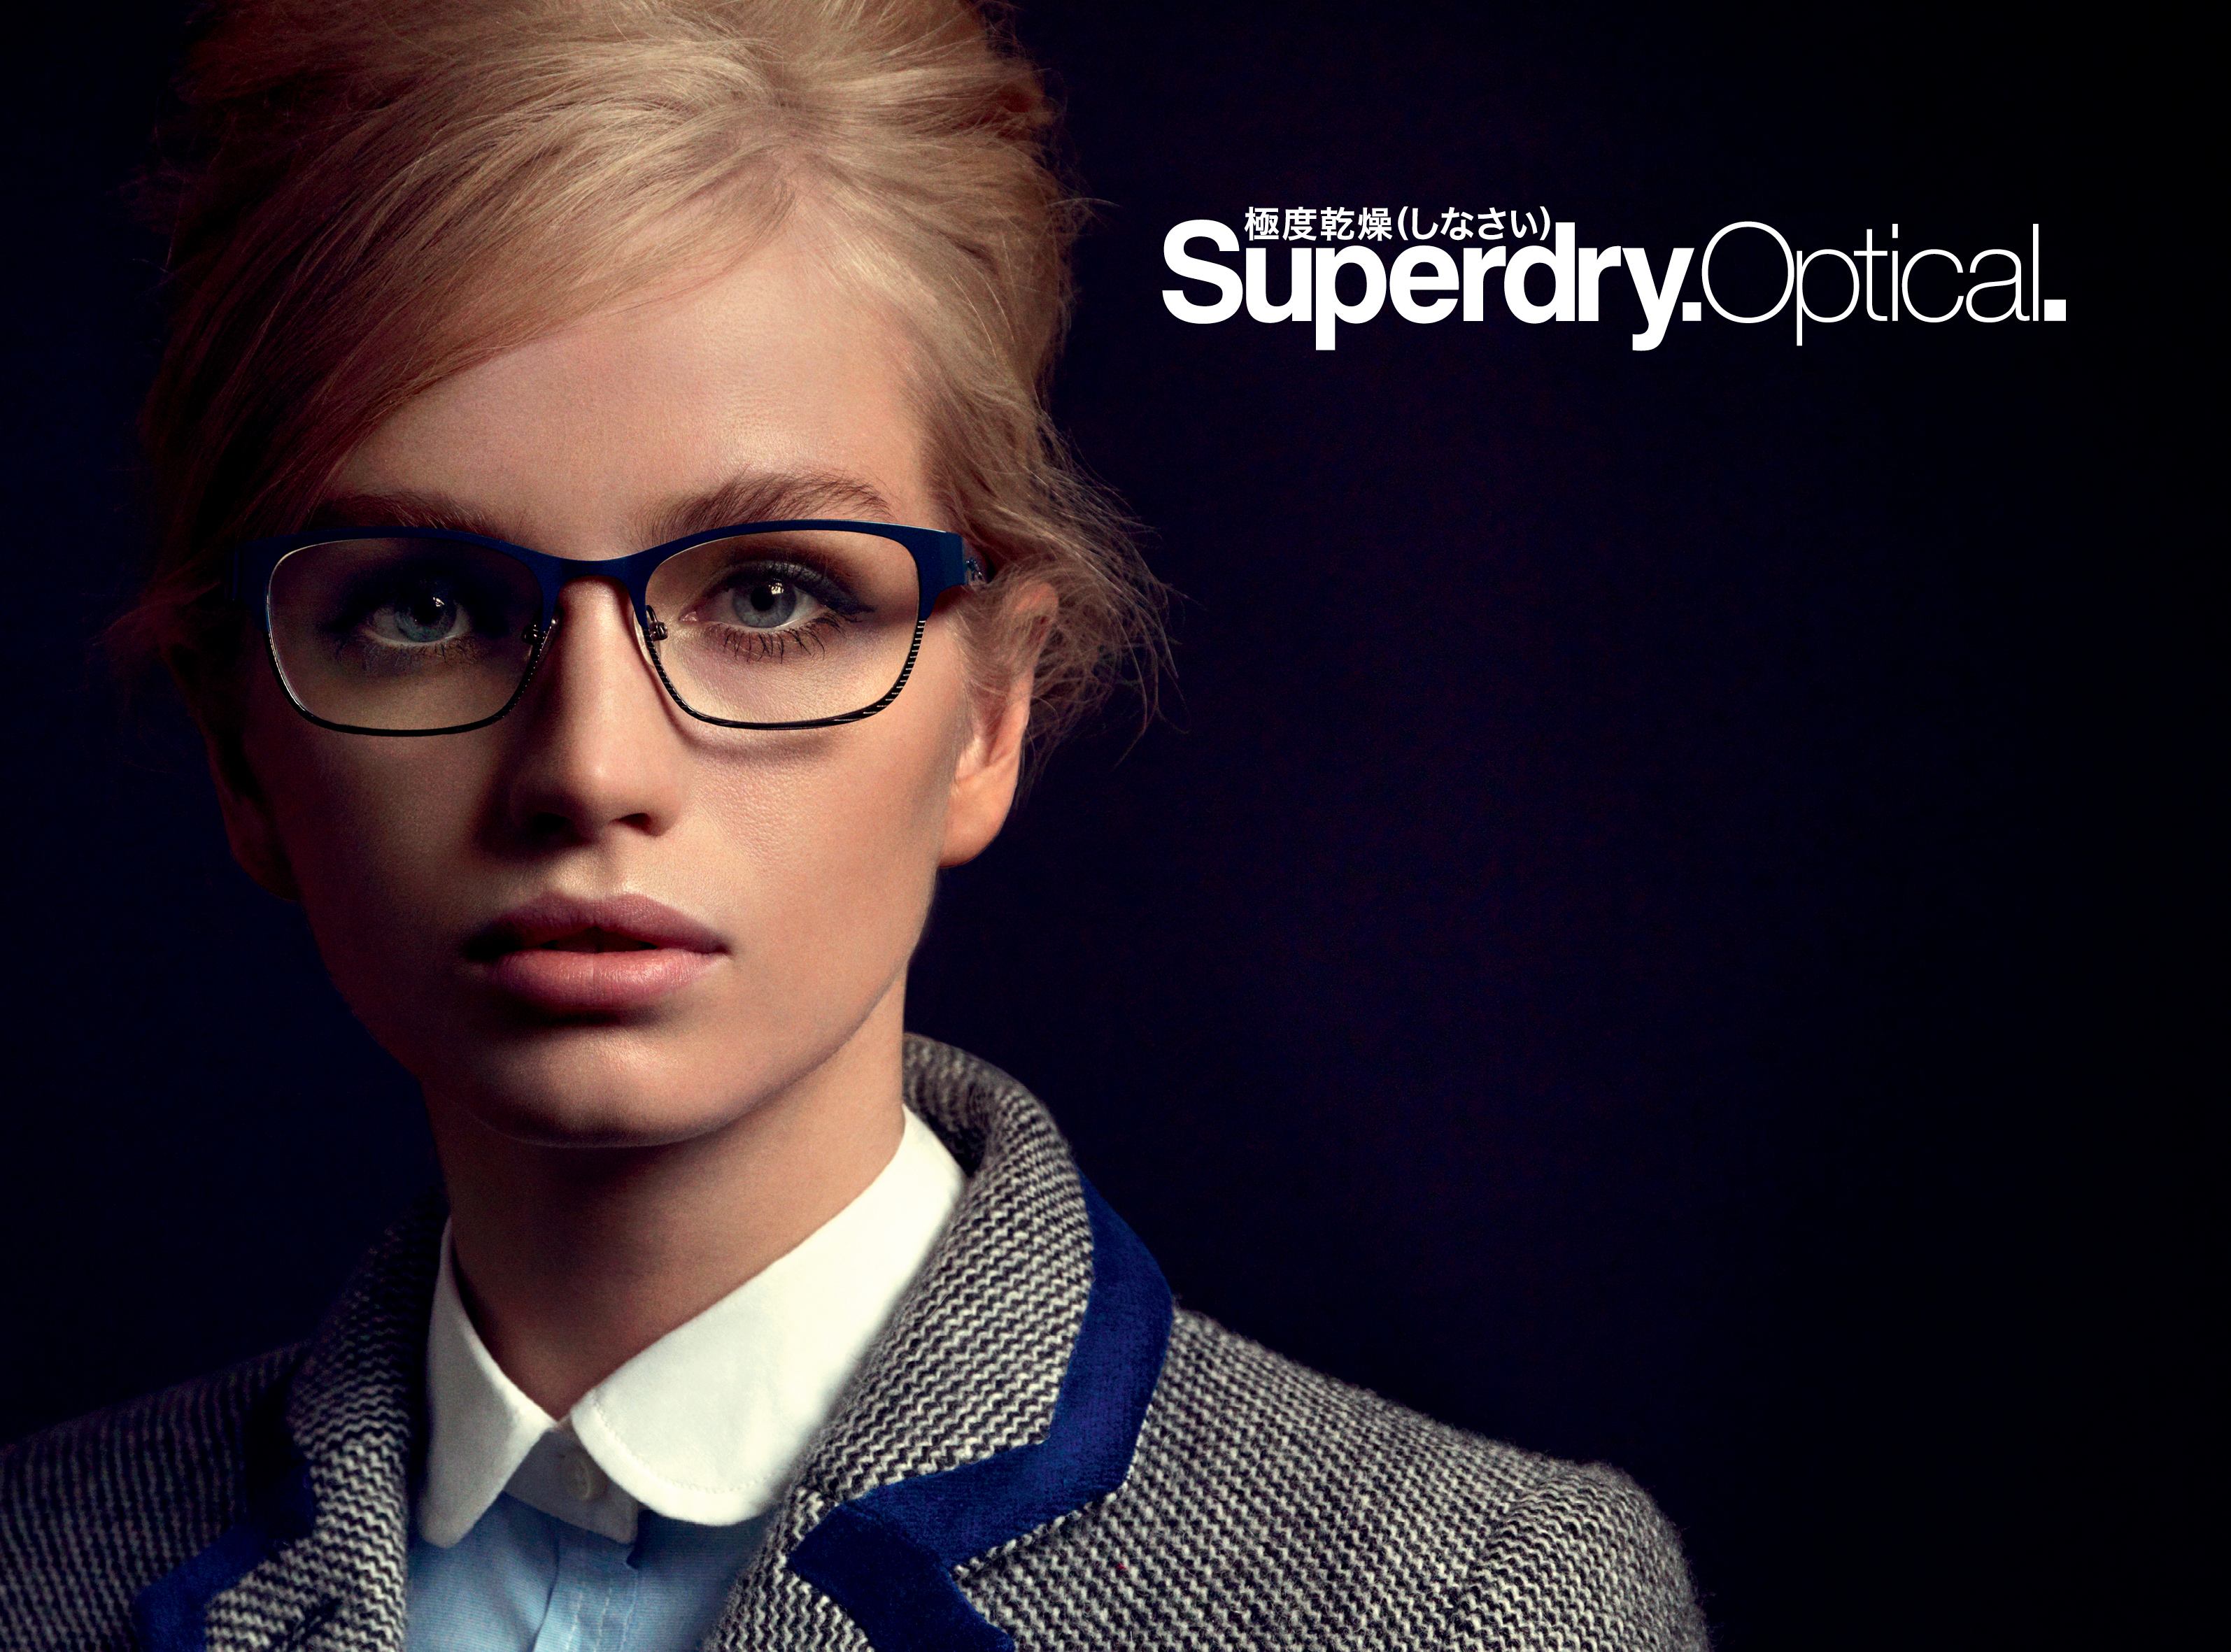 Superdry_optical_2013_CAT-SD-2